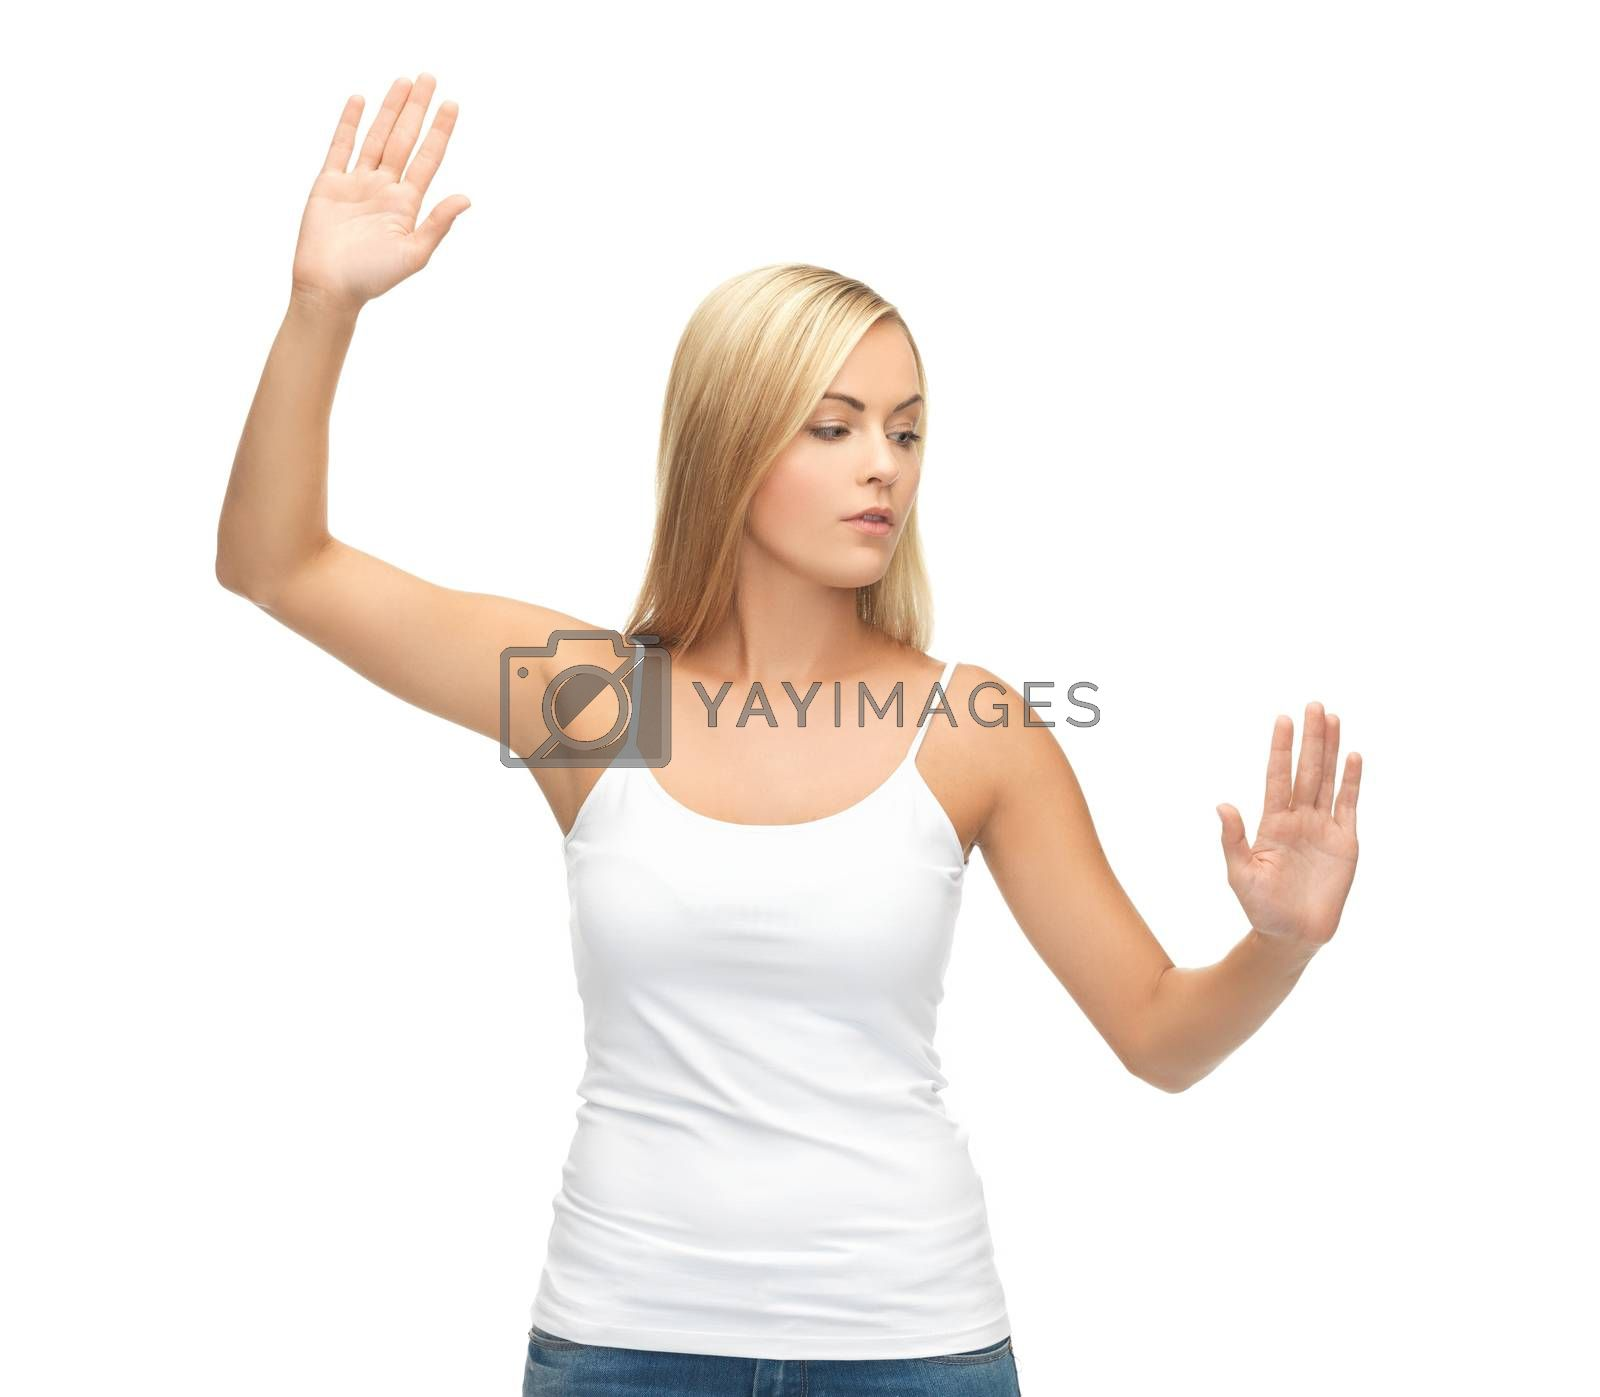 woman in white t-shirt pressing imaginary button by dolgachov